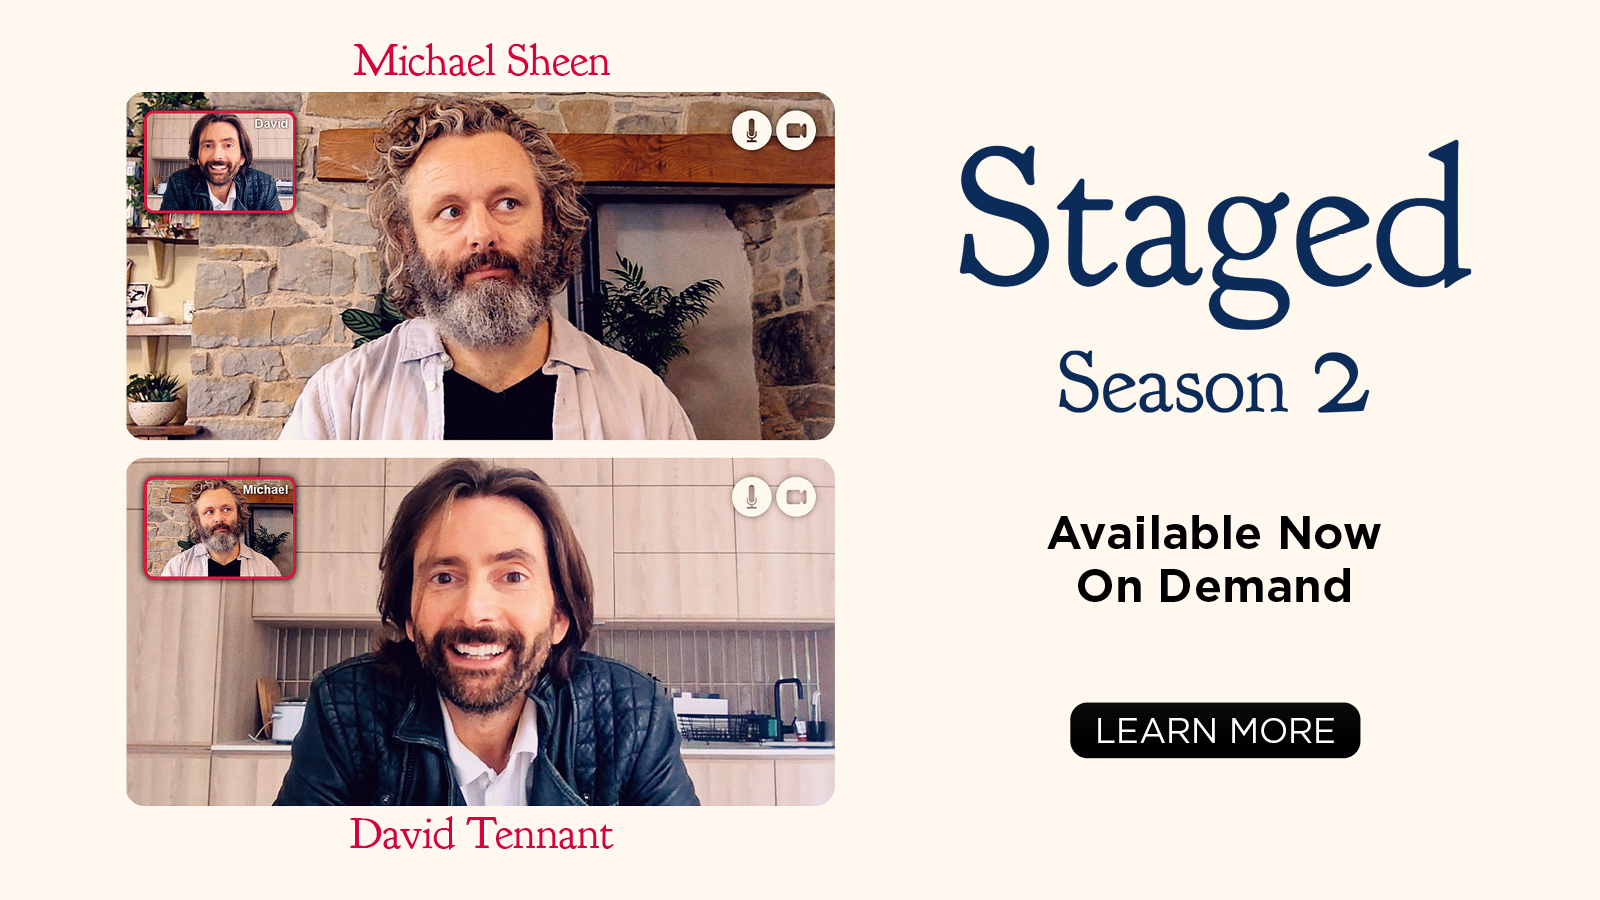 Staged Season 2 Available Now On Demand  [Learn more]